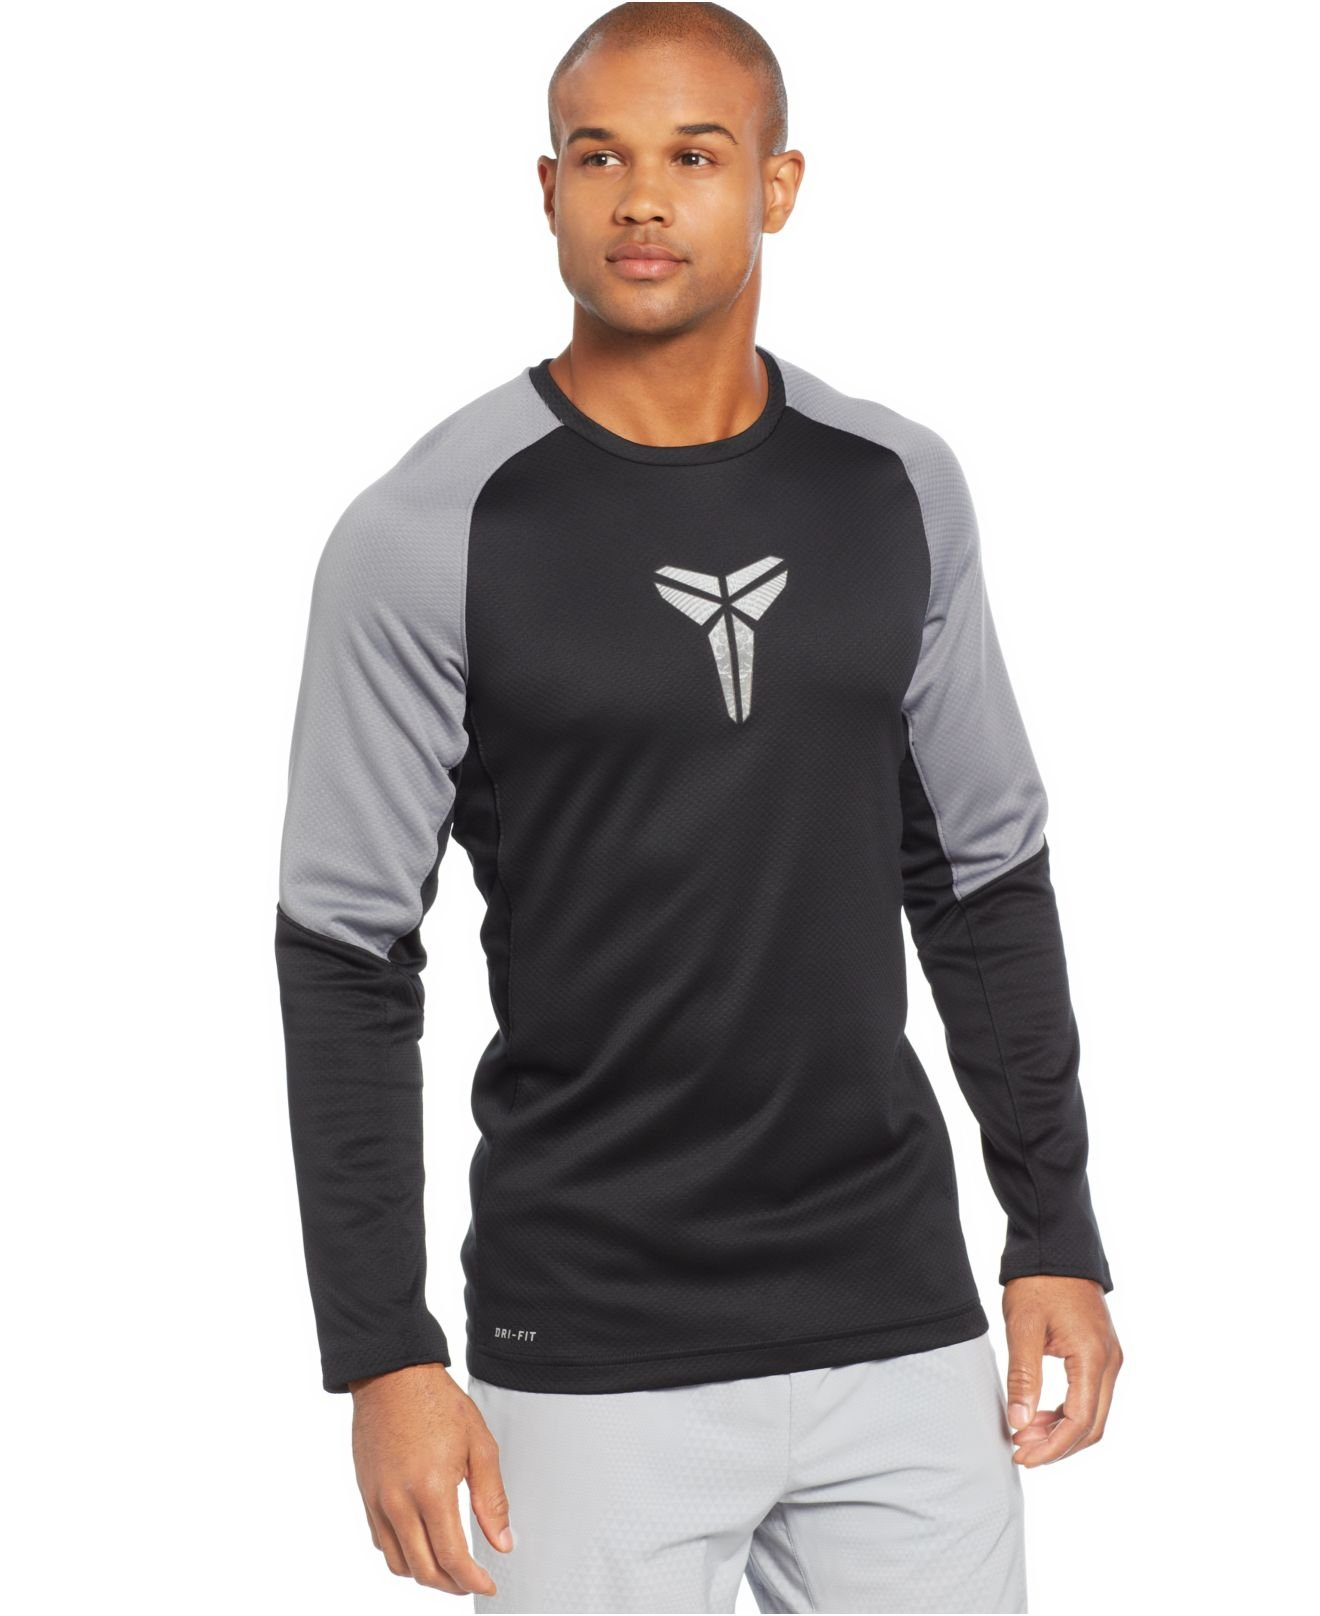 Lyst - Nike Kobe Fearless Long-sleeve Dri-fit T-shirt in Gray for Men cc4322f0f